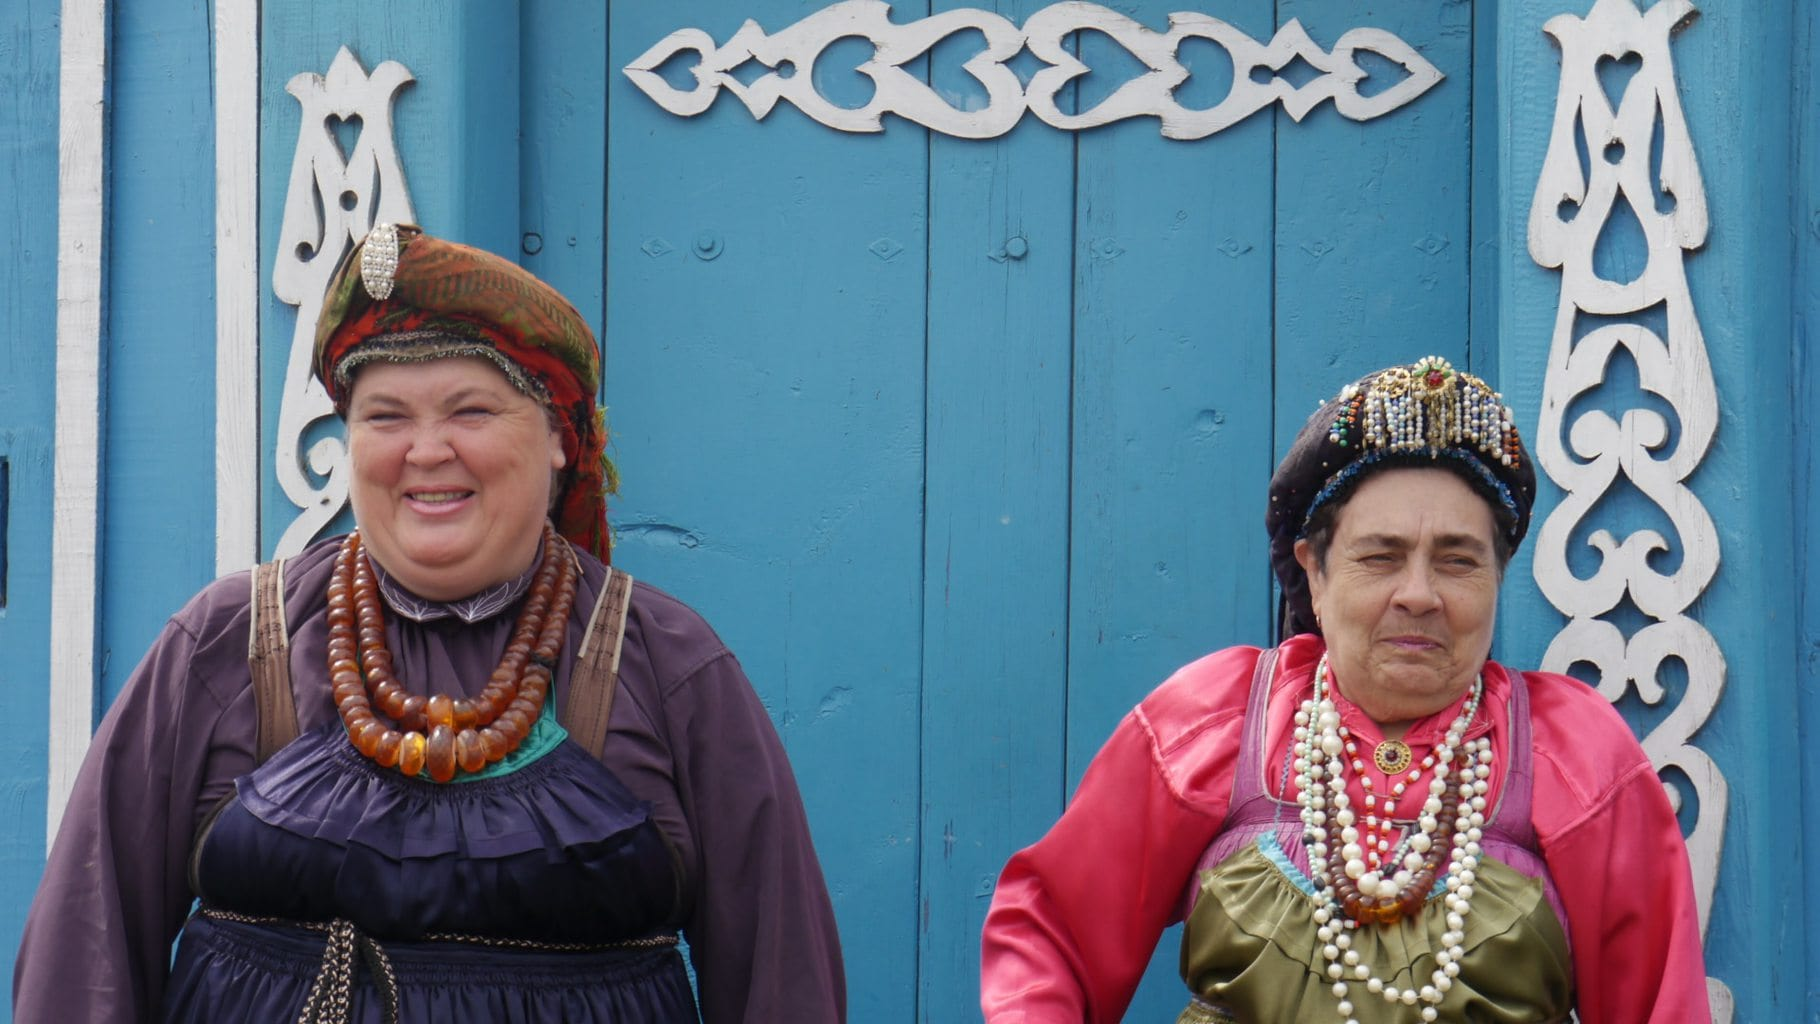 Two Russian women from Ulan Ude